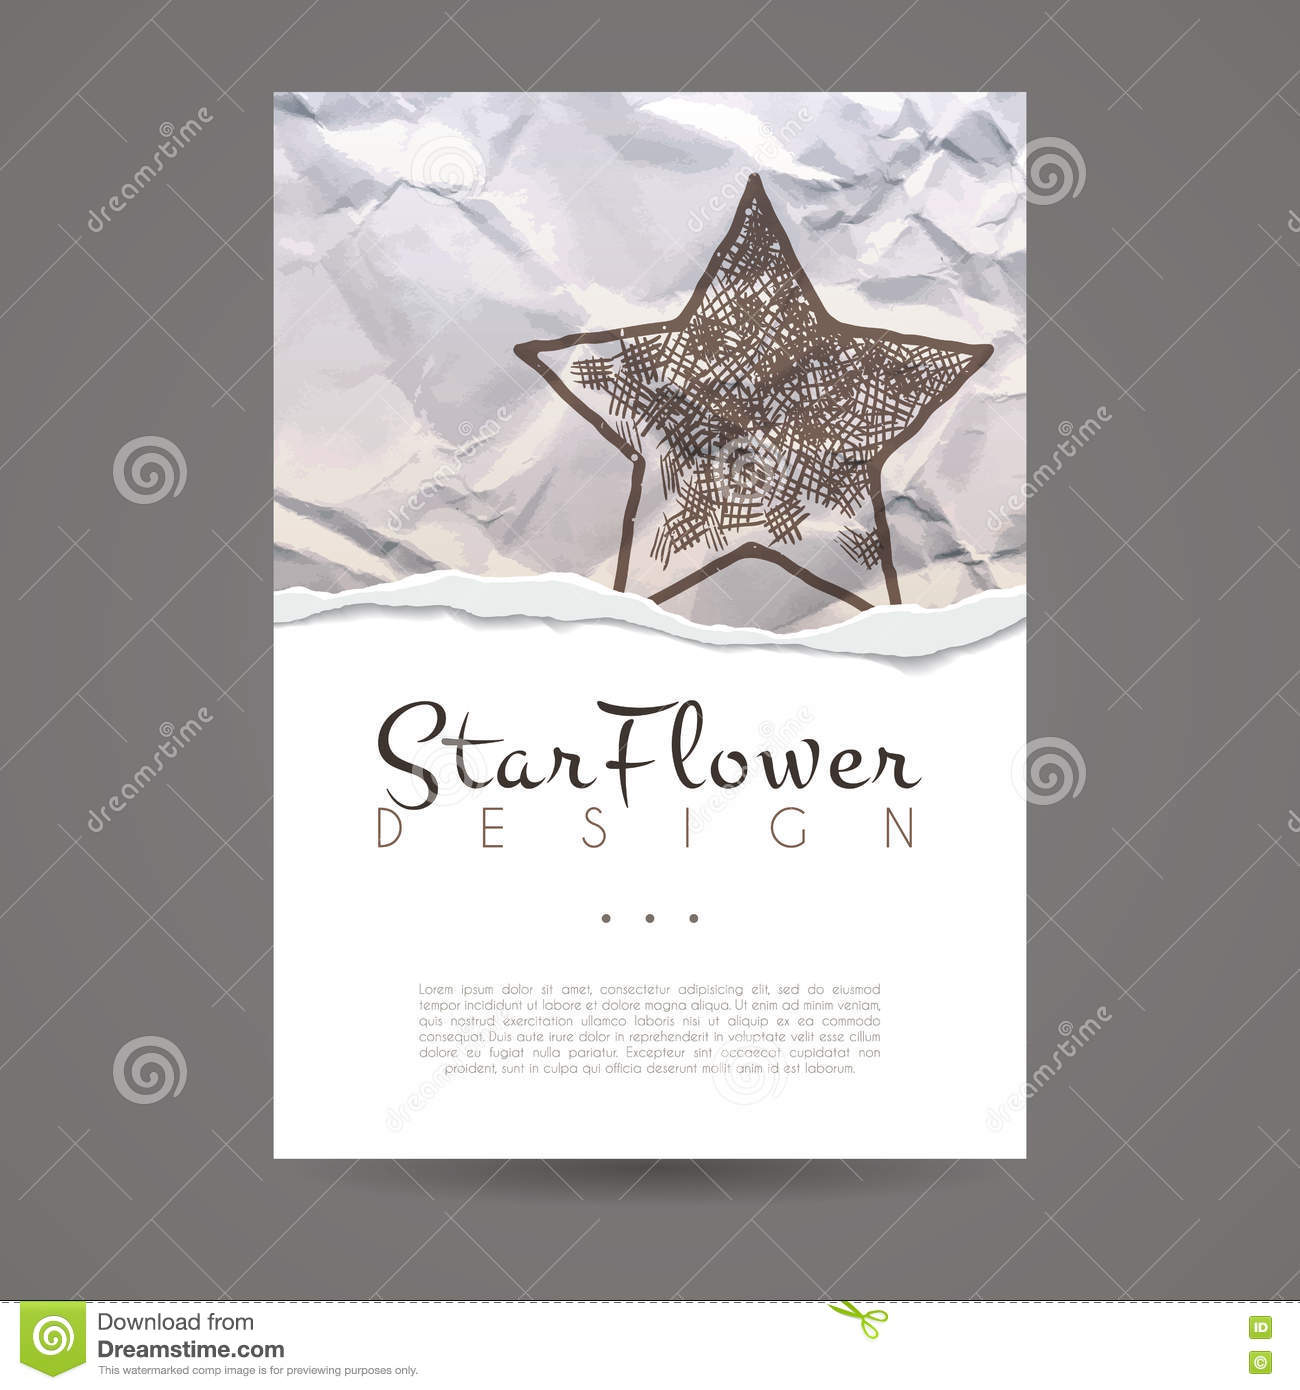 Business card star make business cards images card design and card business card star make business cards image collections card businesscardstar make business cards choice image card reheart Gallery